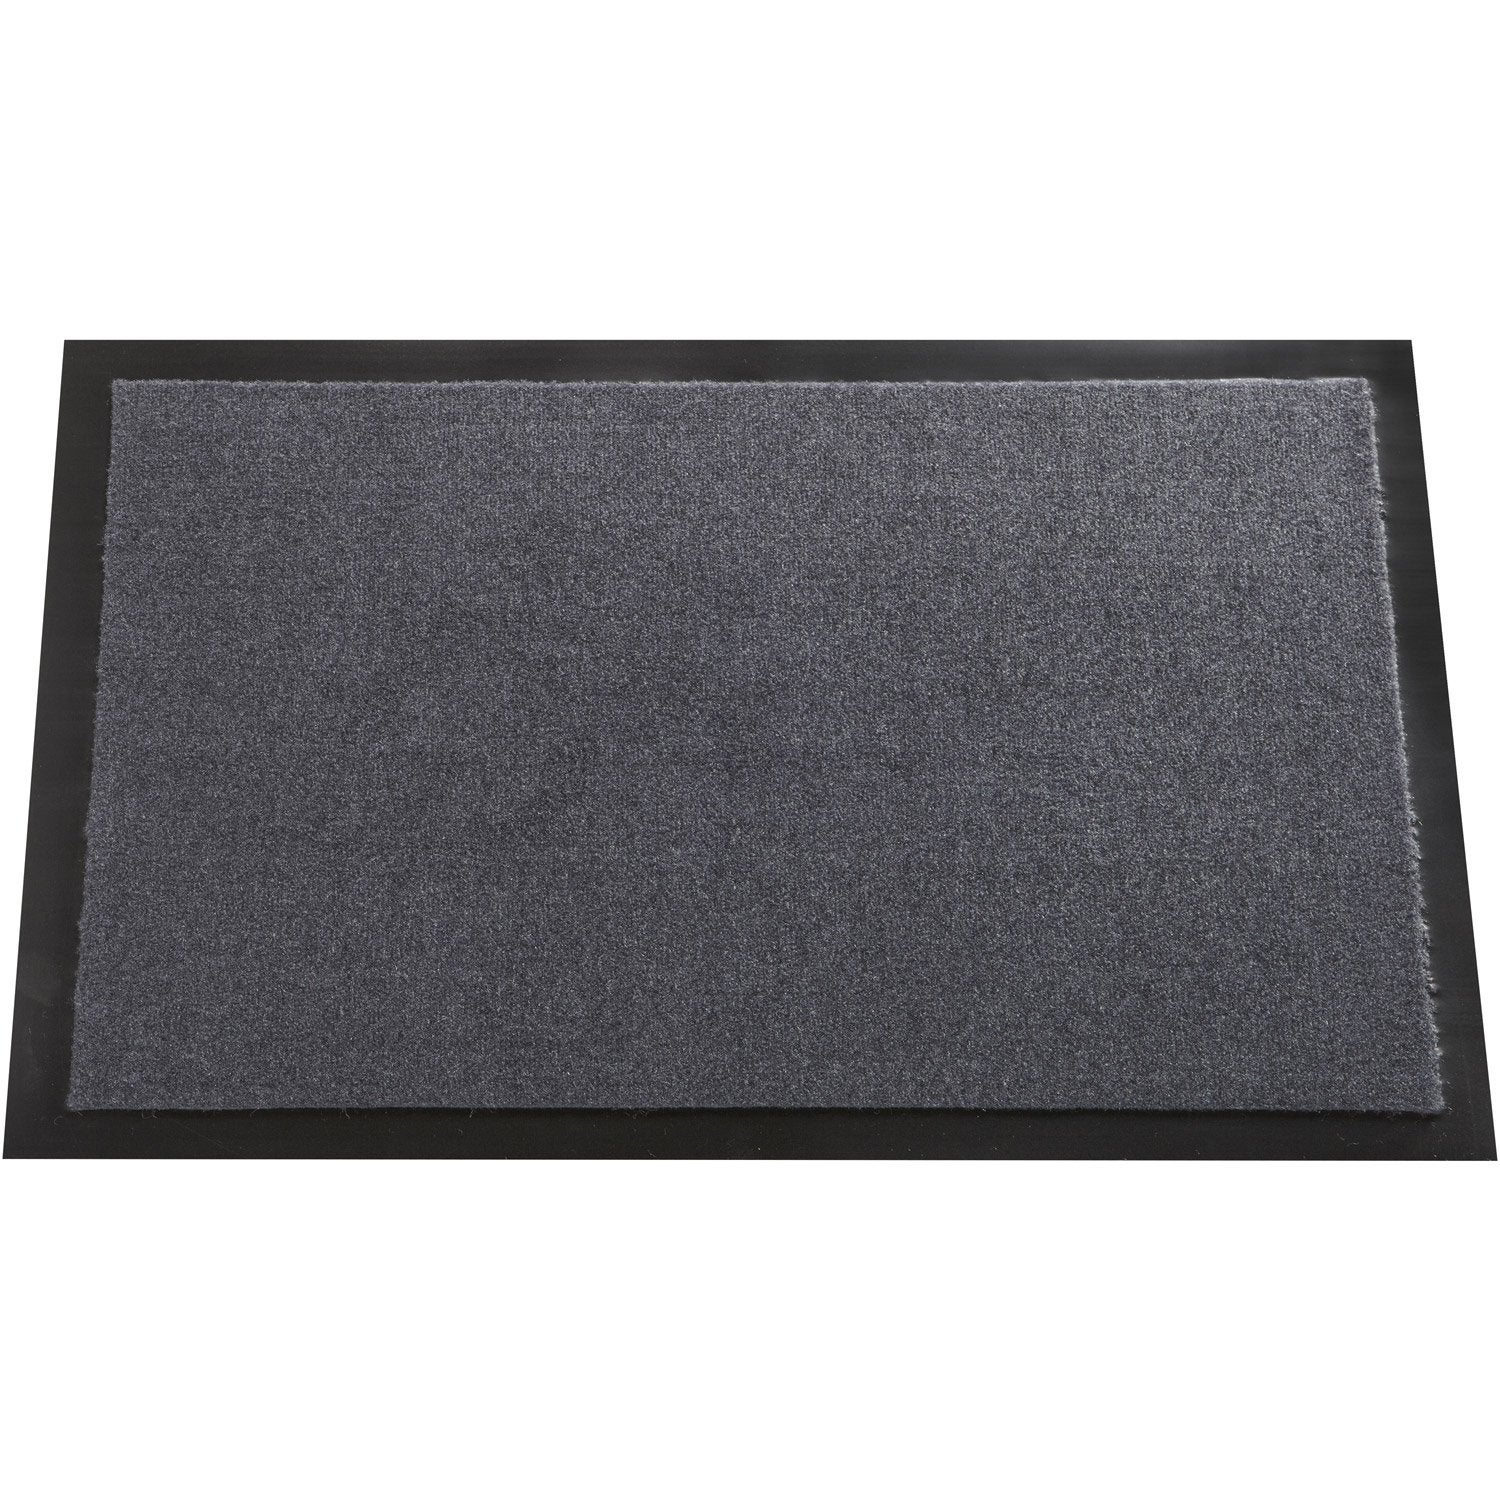 carrelage design tapis leroy merlin moderne design pour carrelage de sol et rev tement de tapis. Black Bedroom Furniture Sets. Home Design Ideas